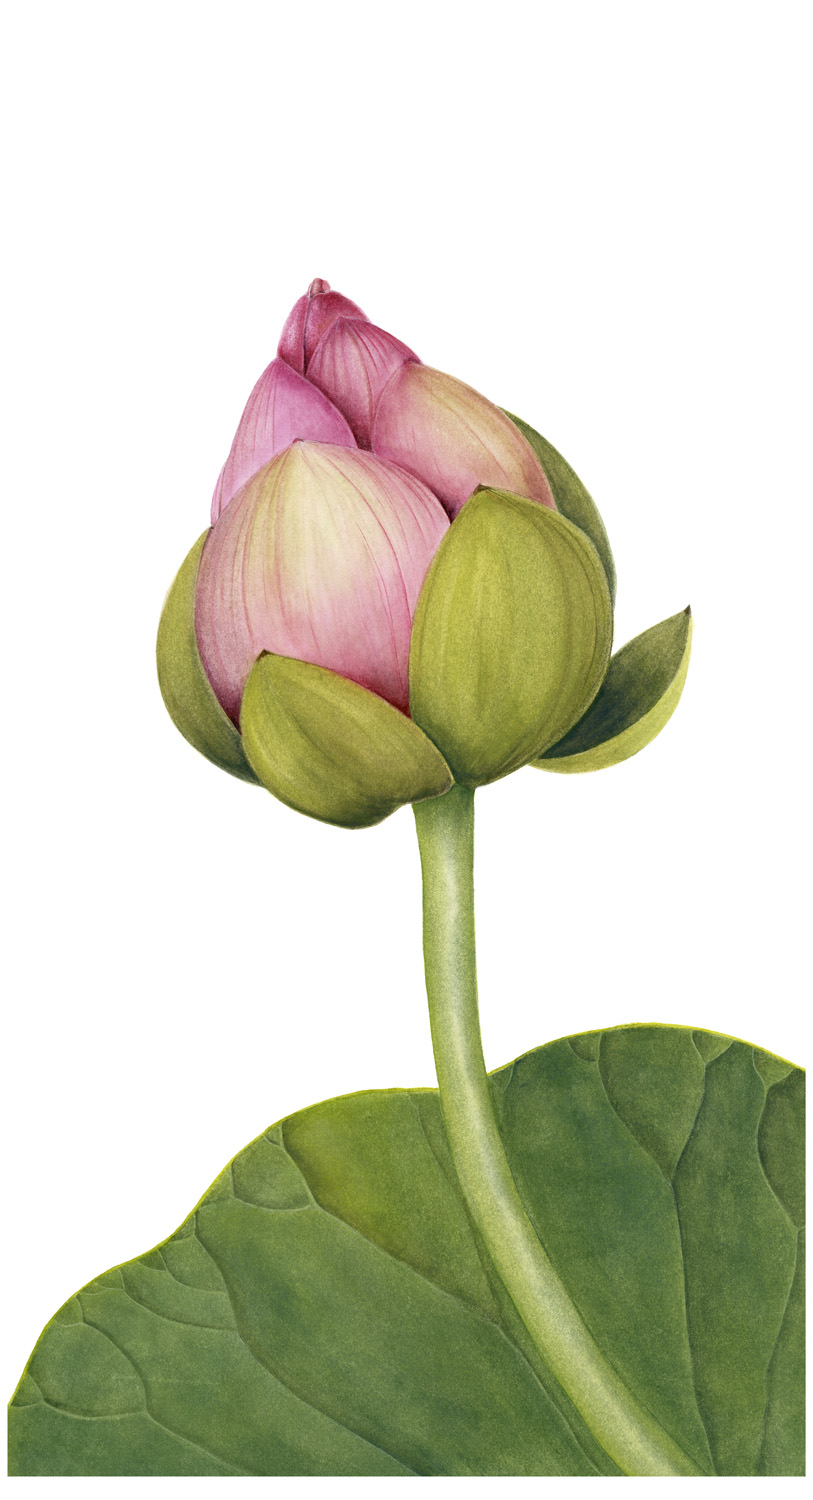 33. Single lotus bud